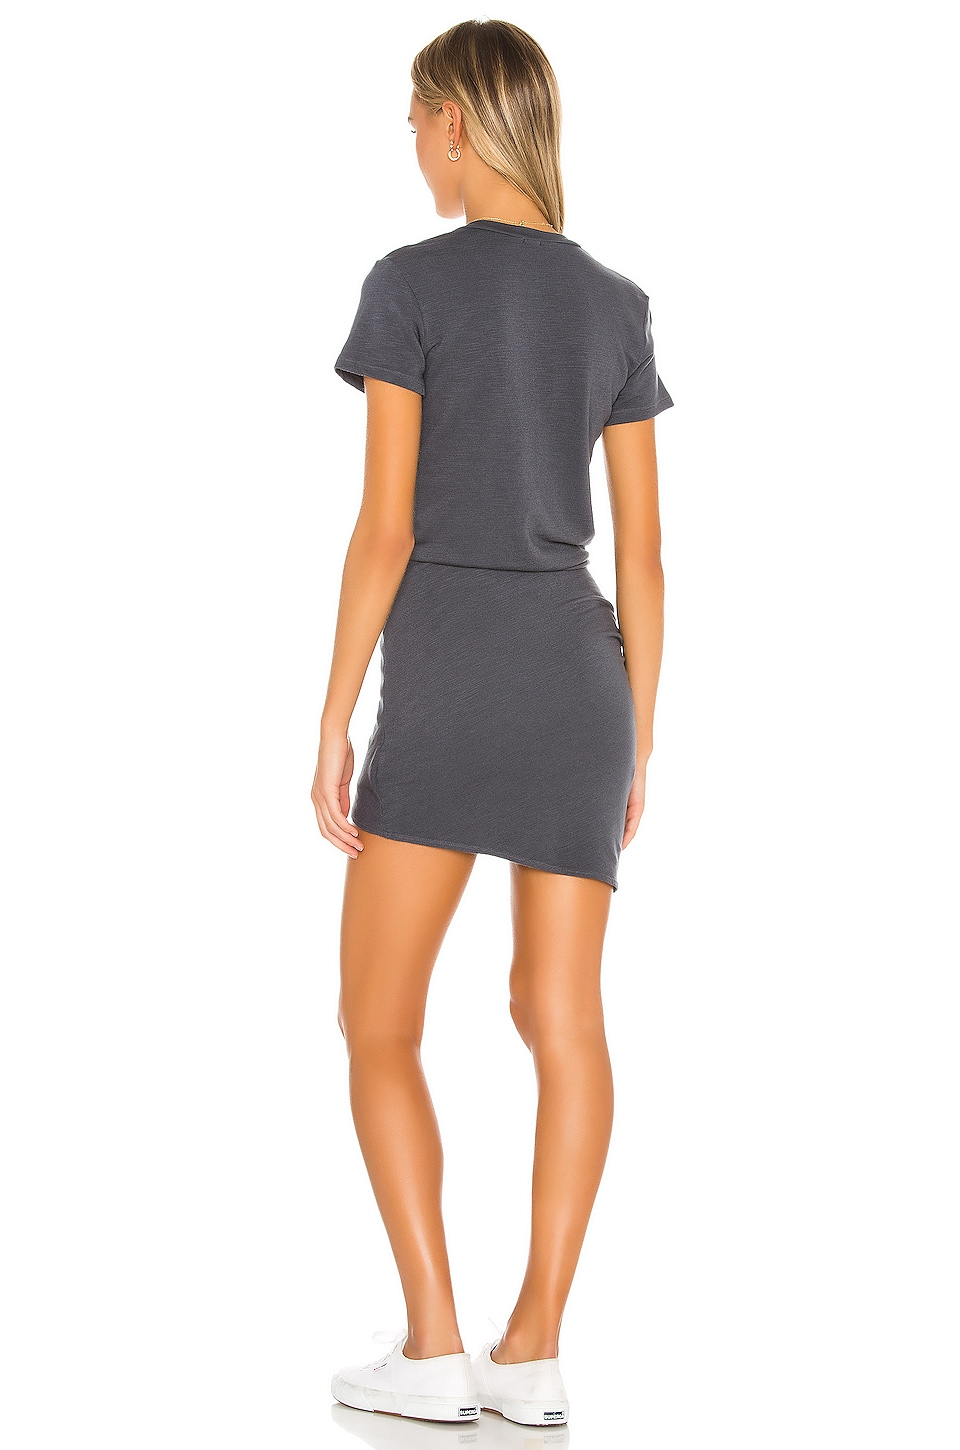 Supersoft V Dress, view 4, click to view large image.